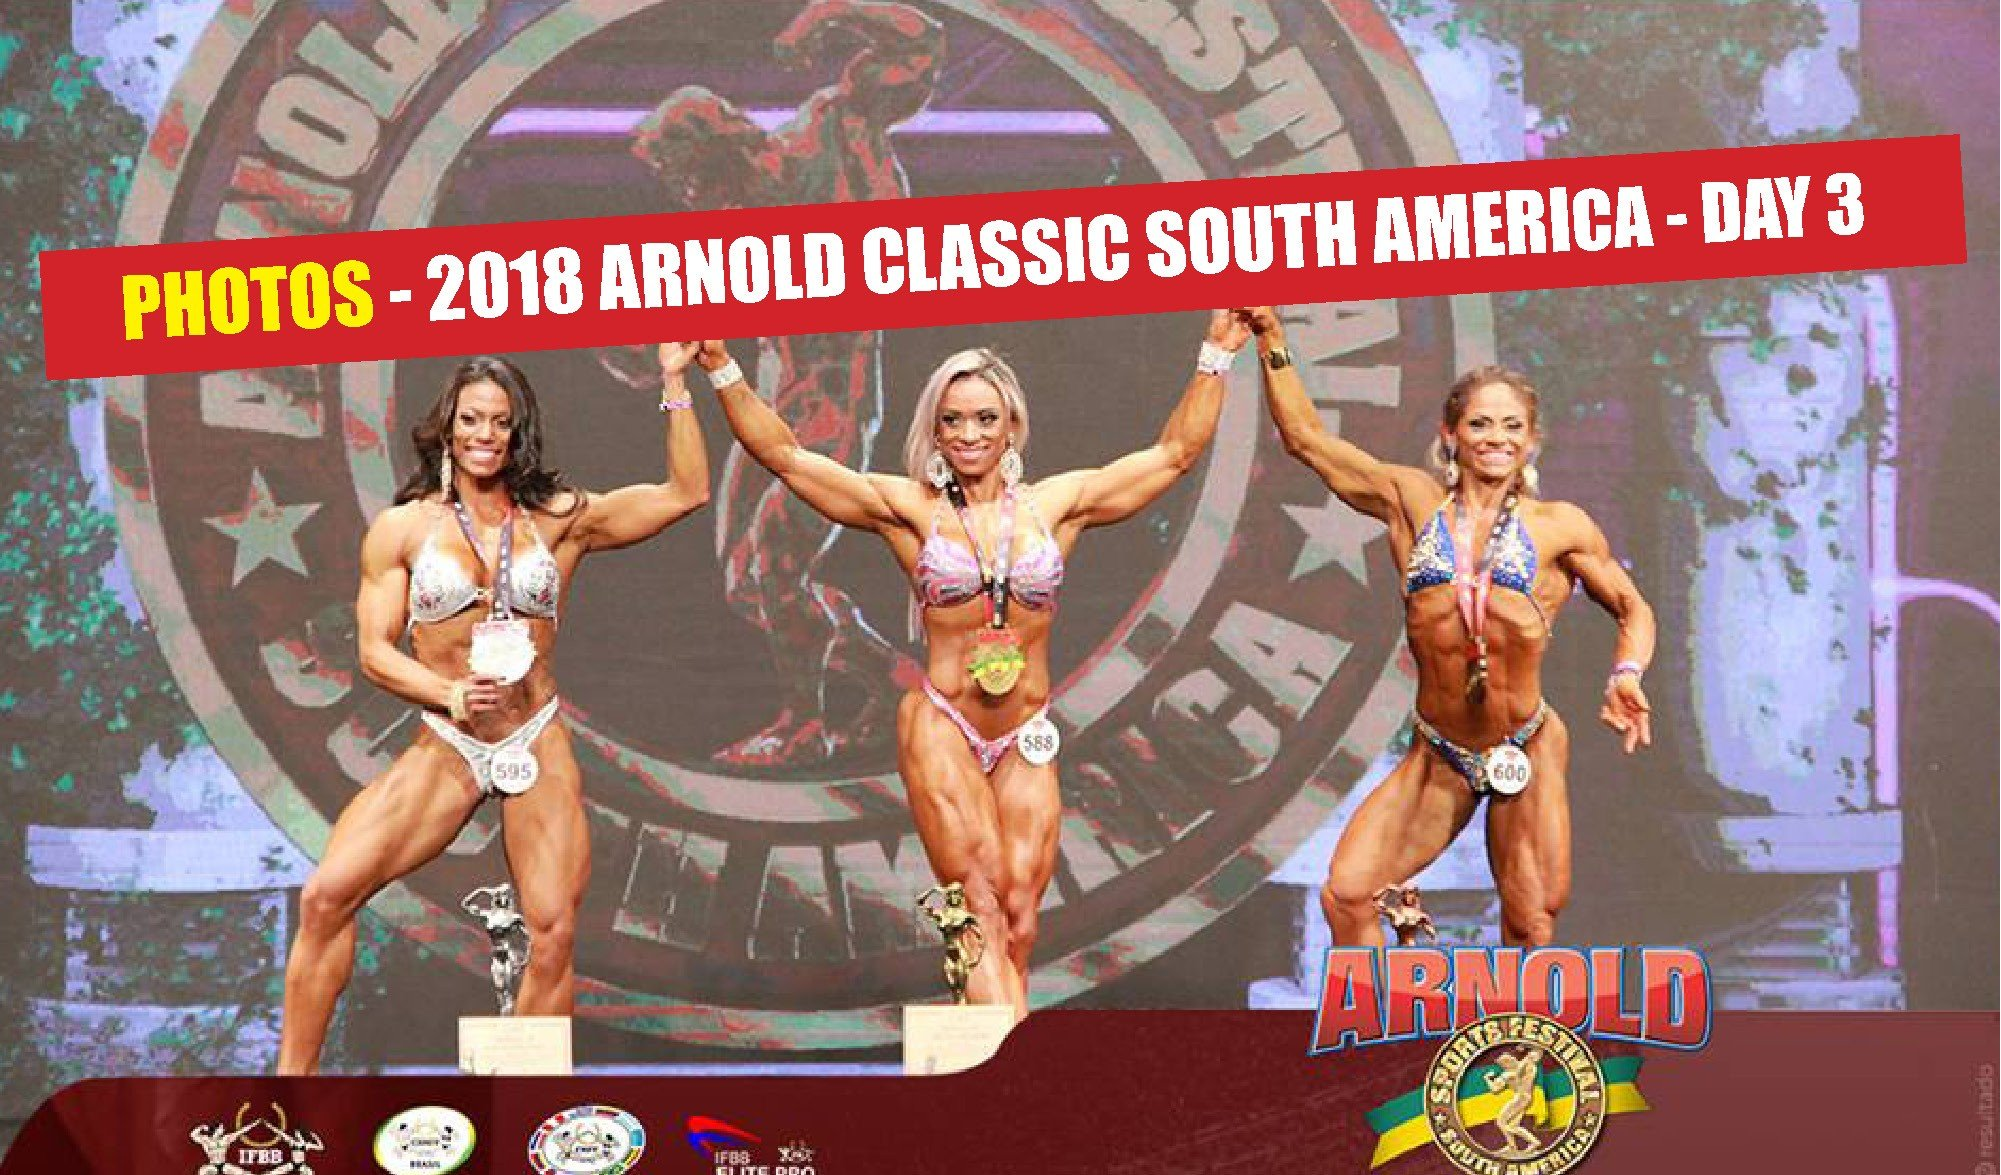 photos 2018 arnold classic south america day 3. Black Bedroom Furniture Sets. Home Design Ideas